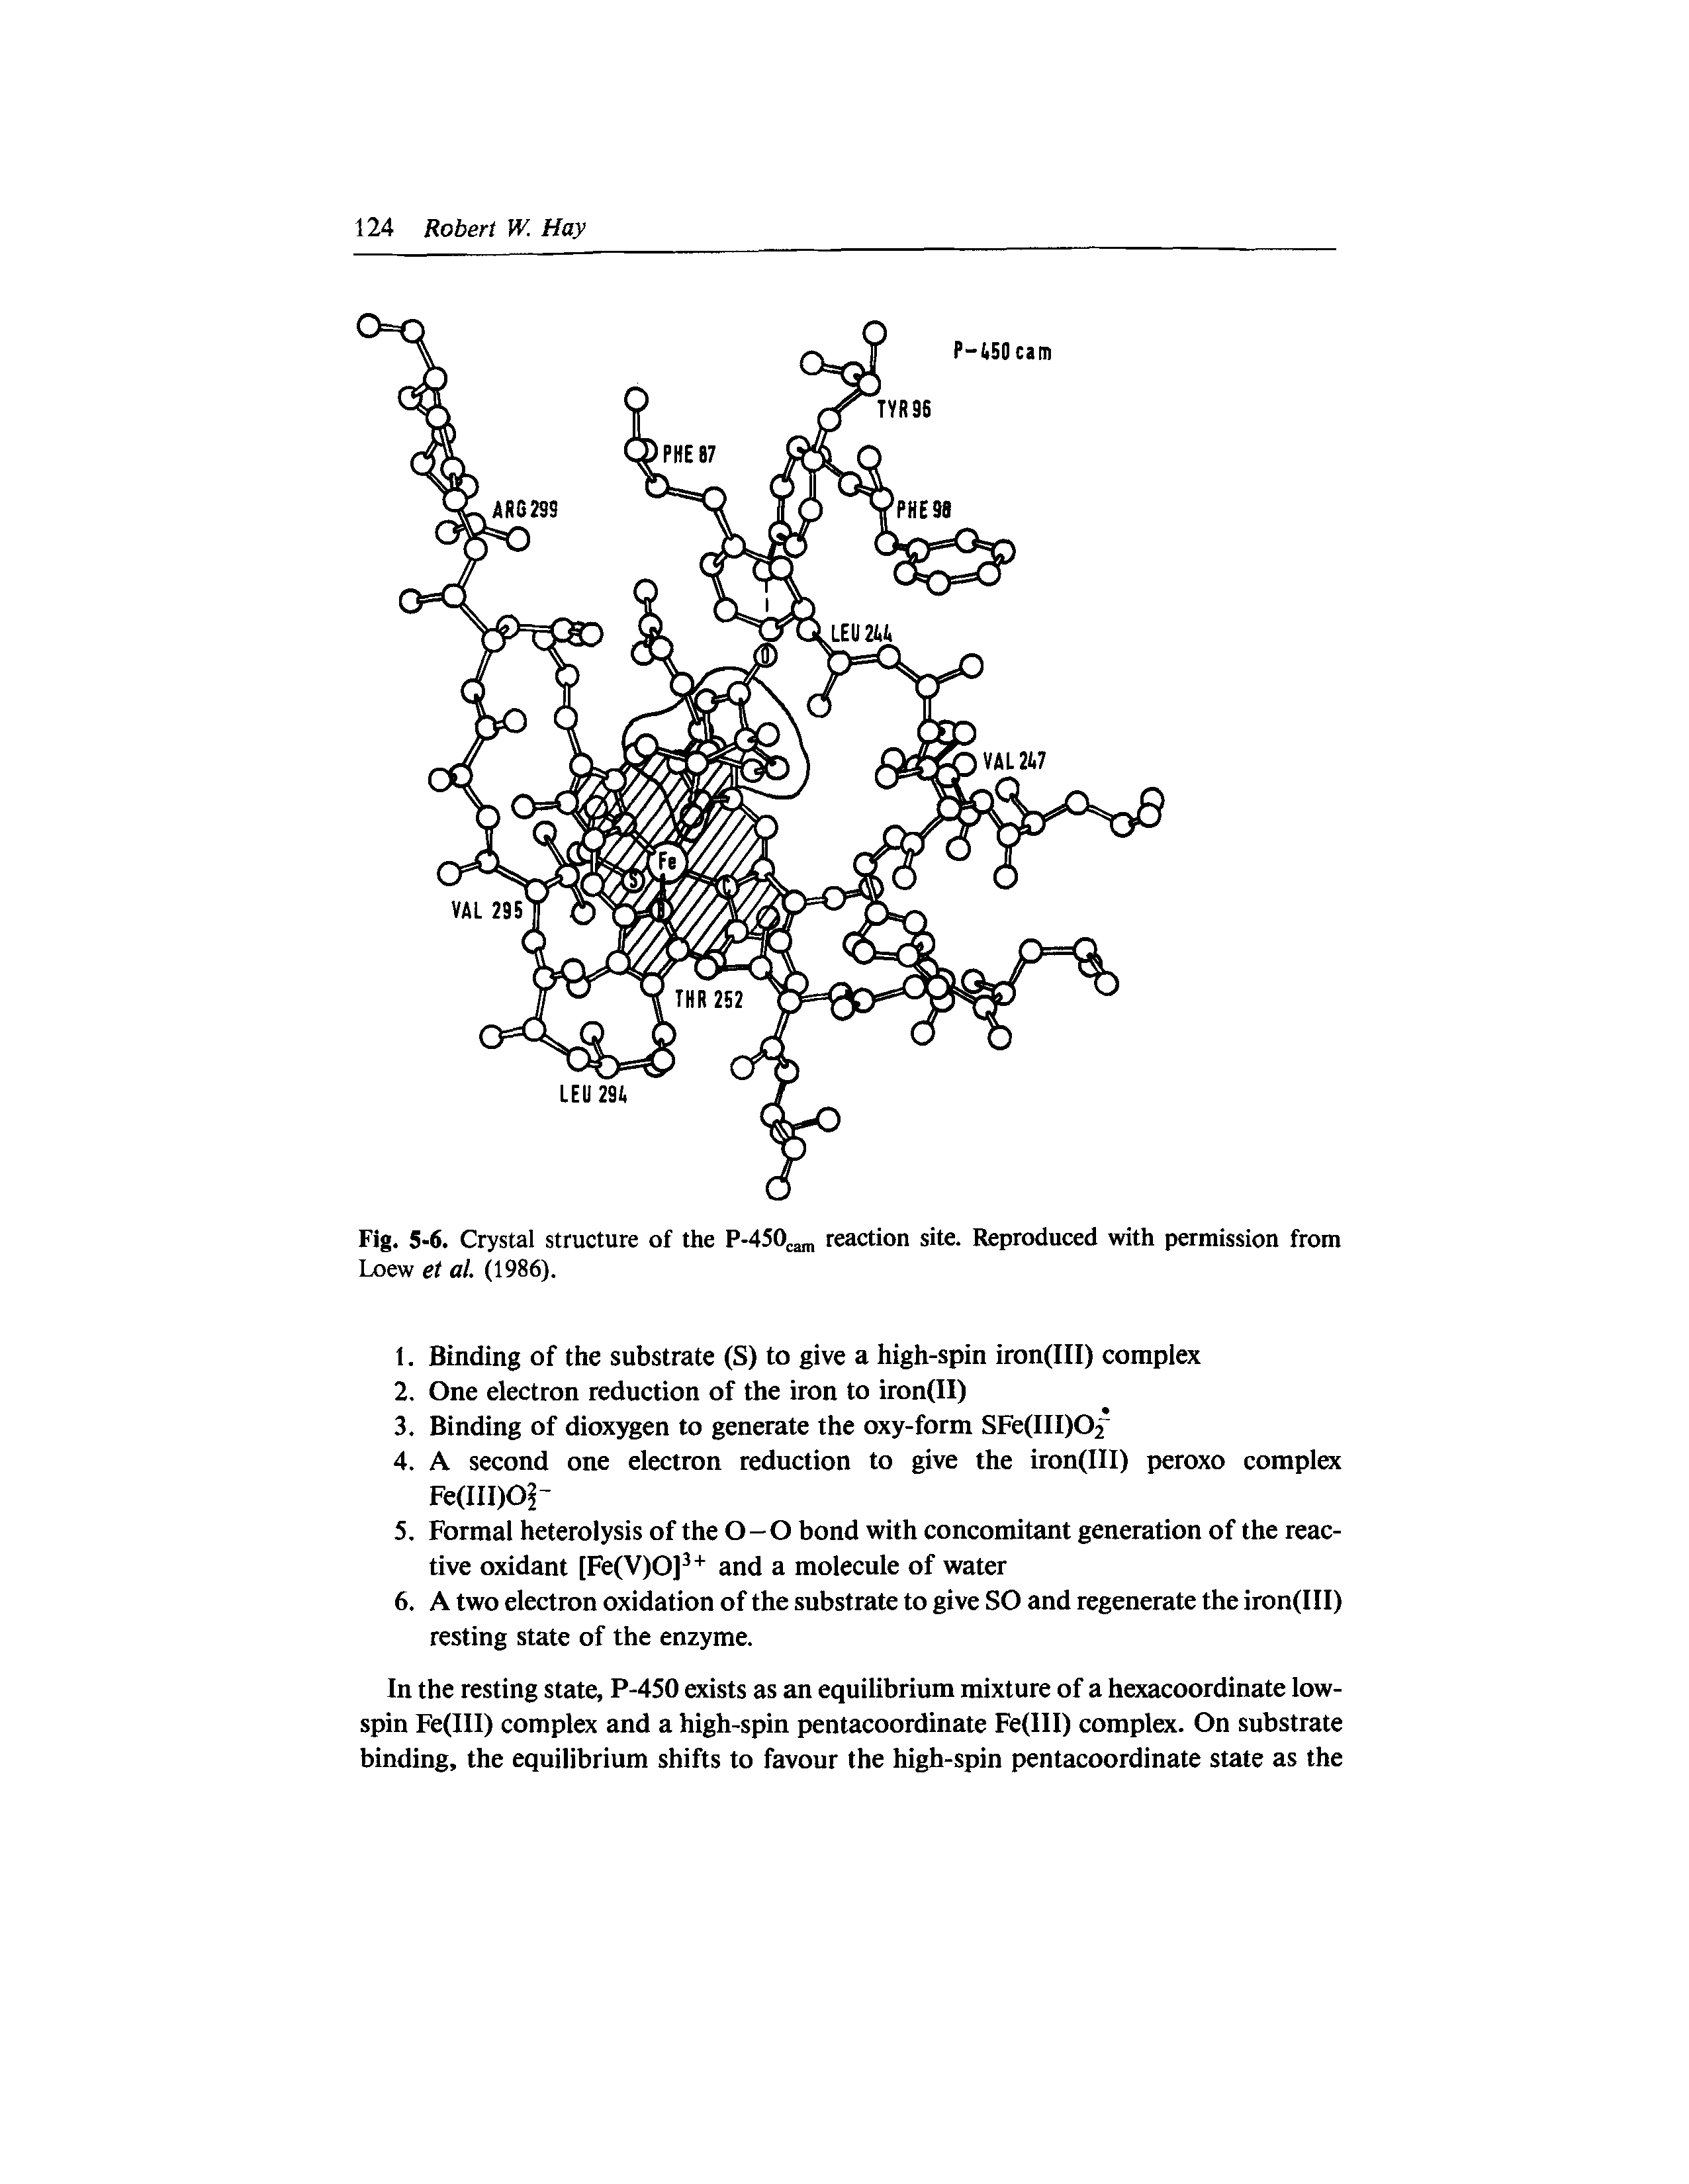 Fig. 5-6. Crystal structure of the P-450cam reaction site. Reproduced with permission from Loew et at. (1986).